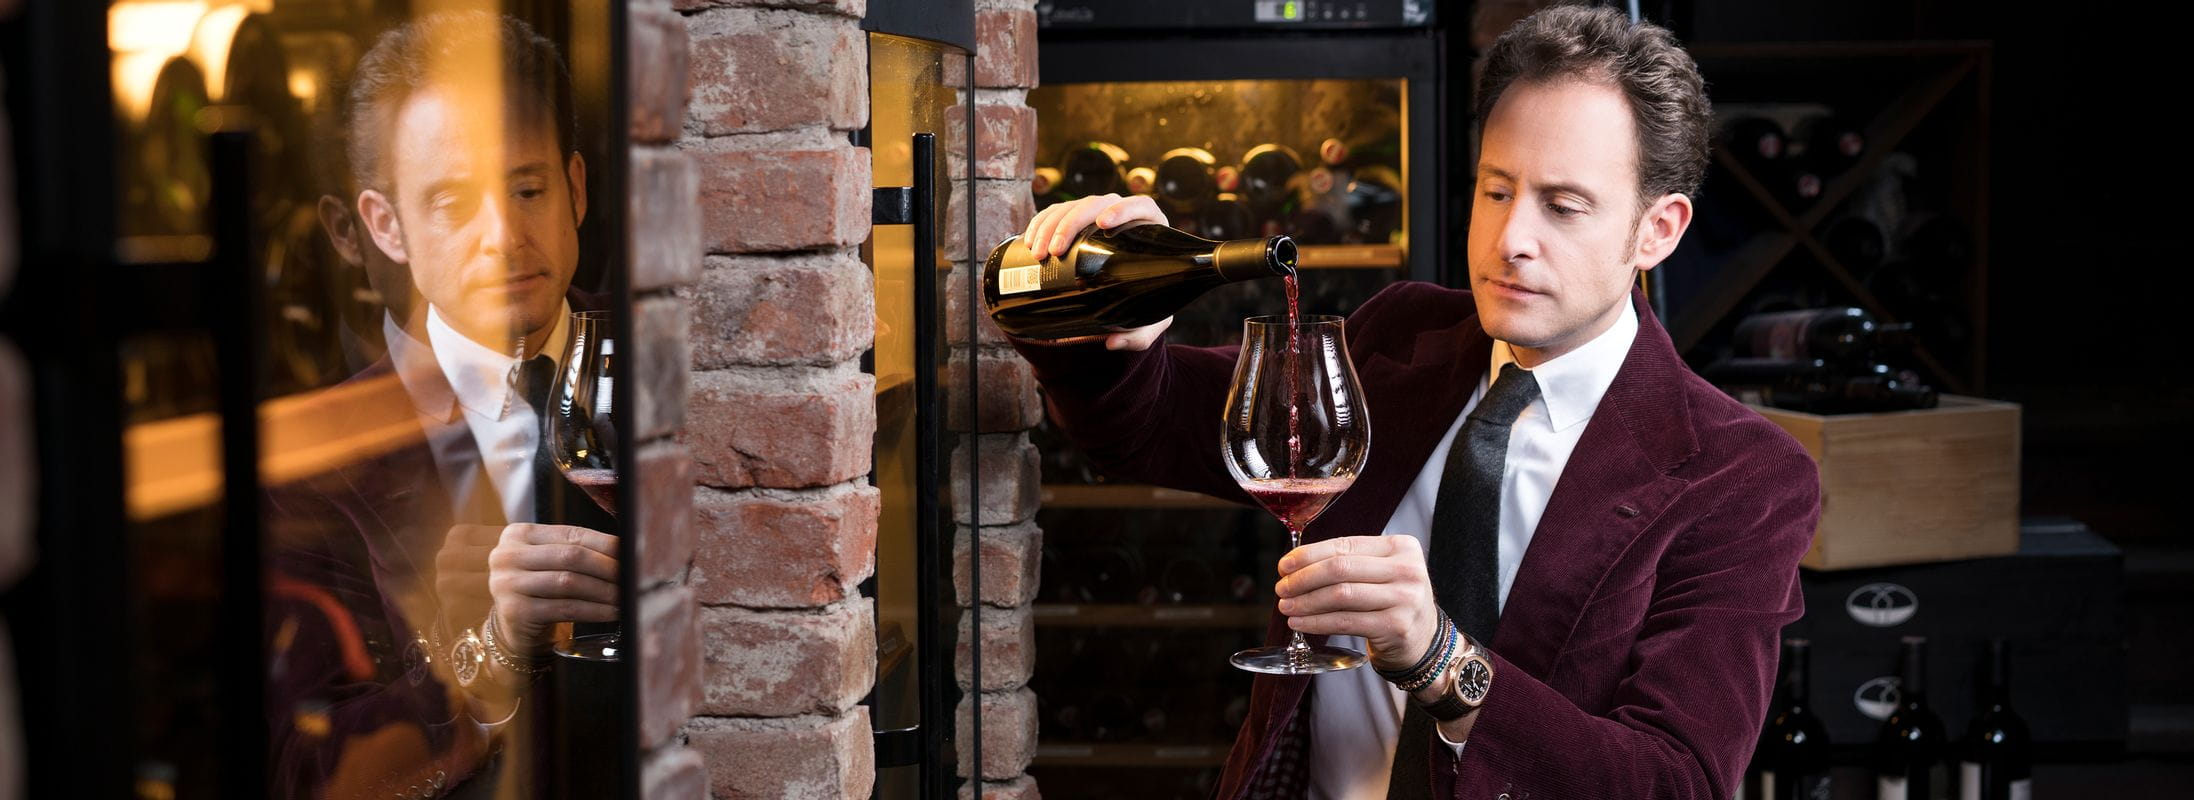 Maximilian Riedel enjoys wine from a RIEDEL Performance Pinot Noir glass